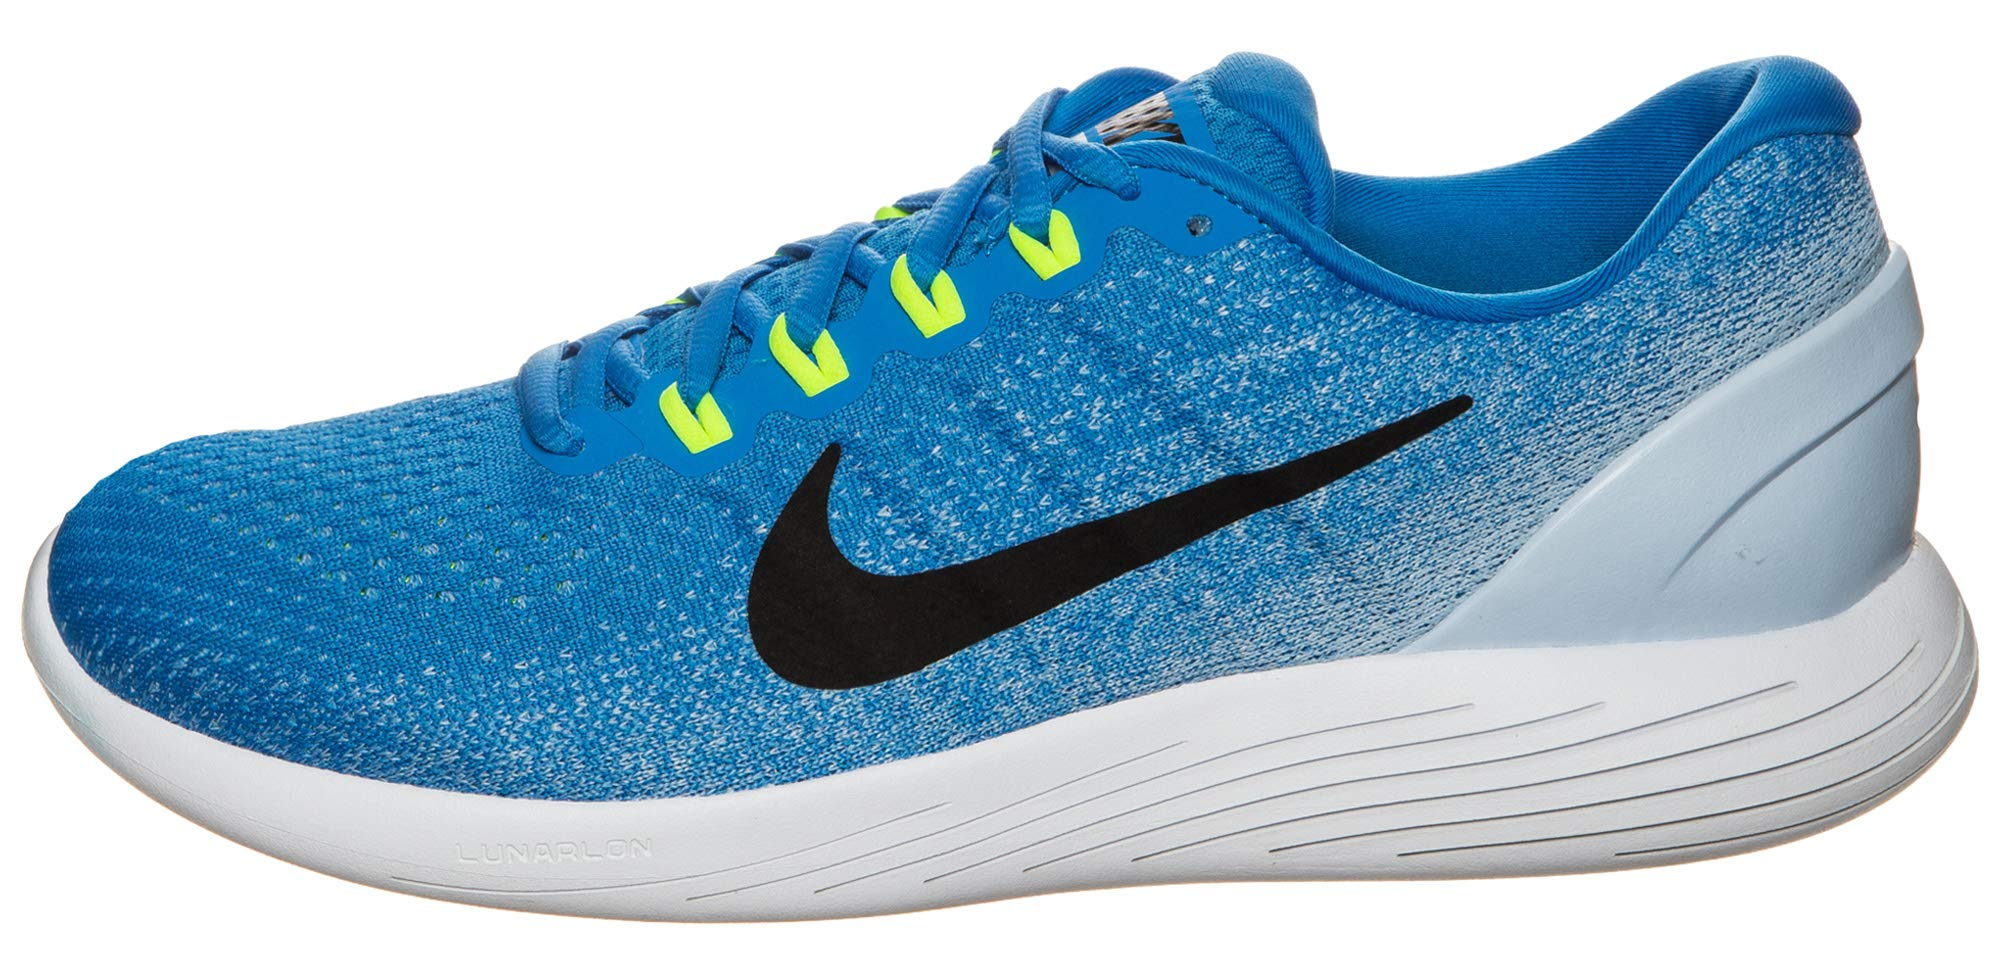 best service e2844 c0fb4 Galleon - Nike Lunarglide 9 Mens Running Trainers 904715 Sneakers Shoes (UK  6 US 7 EU 40, Italy Blue Black 401)